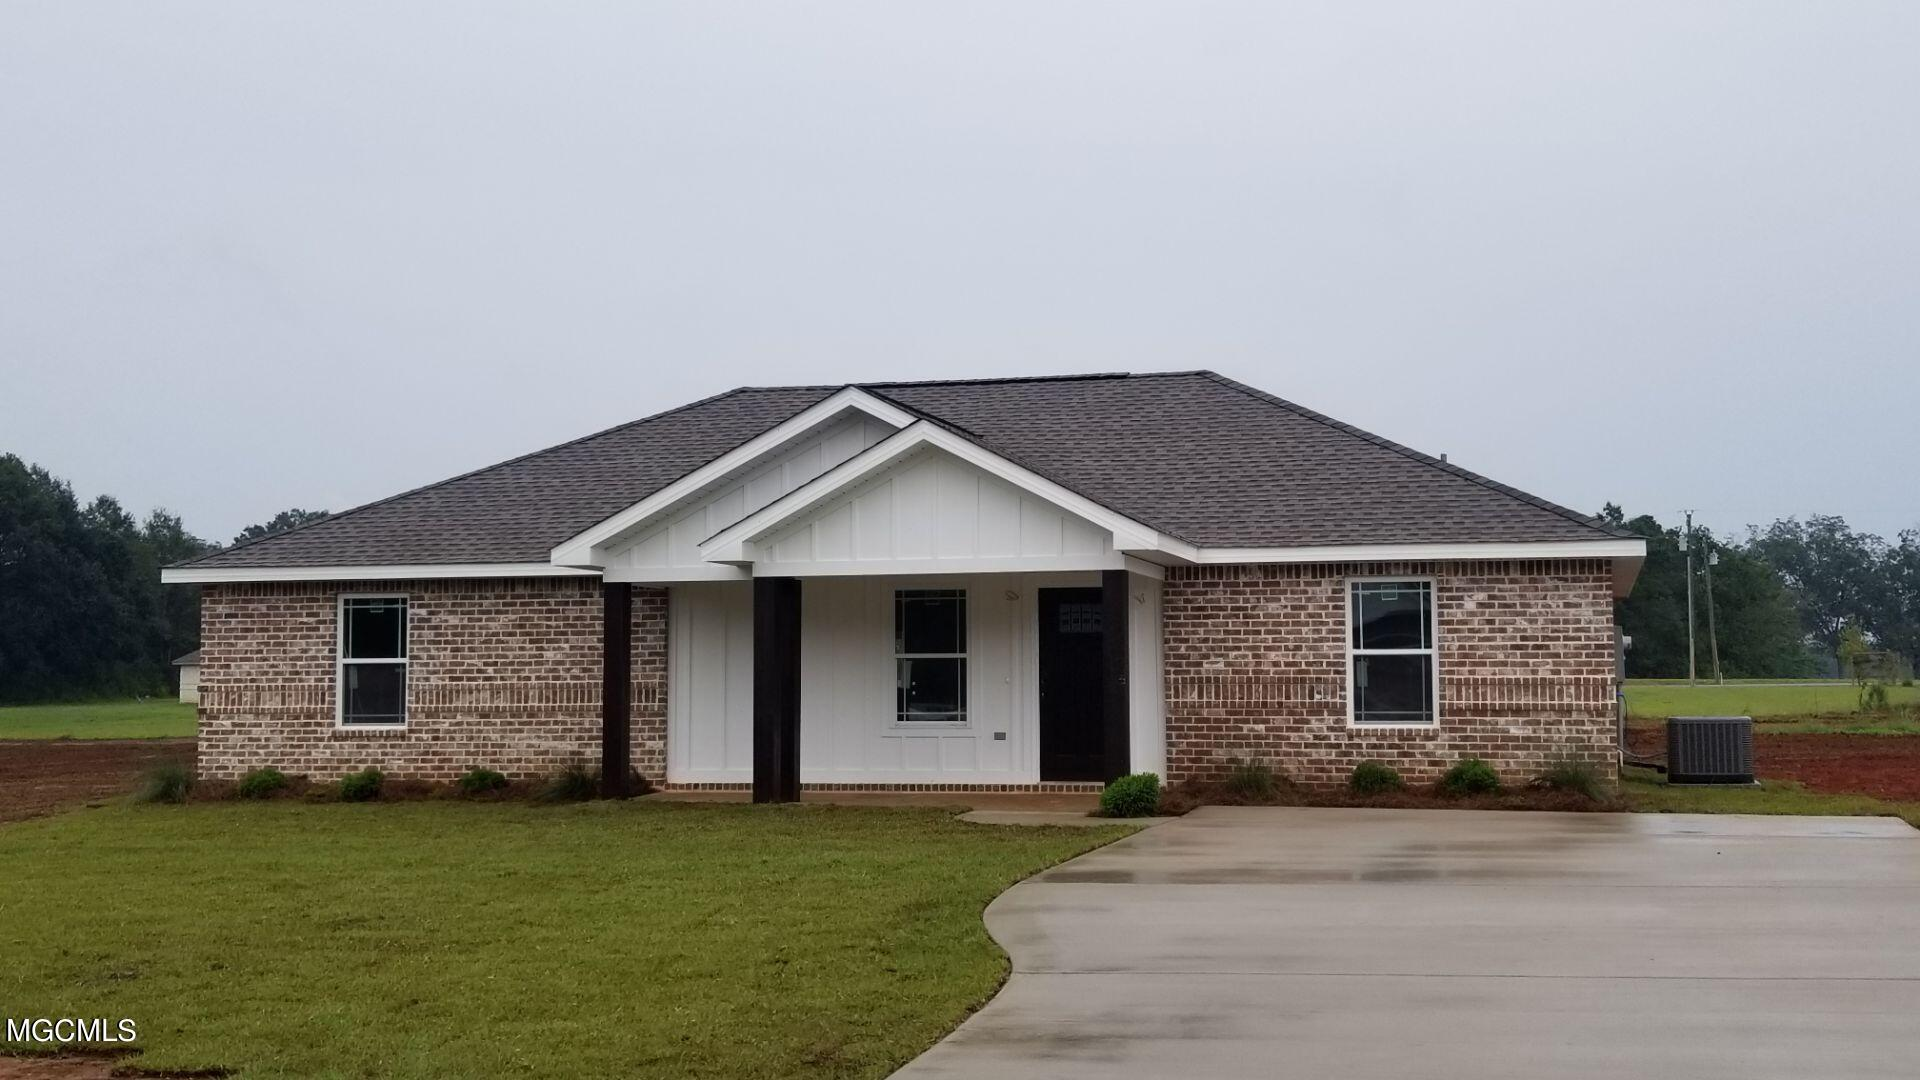 New construction home in great location! 3 bedroom 2 bath home to be completed first week of October.  Open floor plan with vinyl plank flooring throughout, granite countertops and stainless steel appliances.